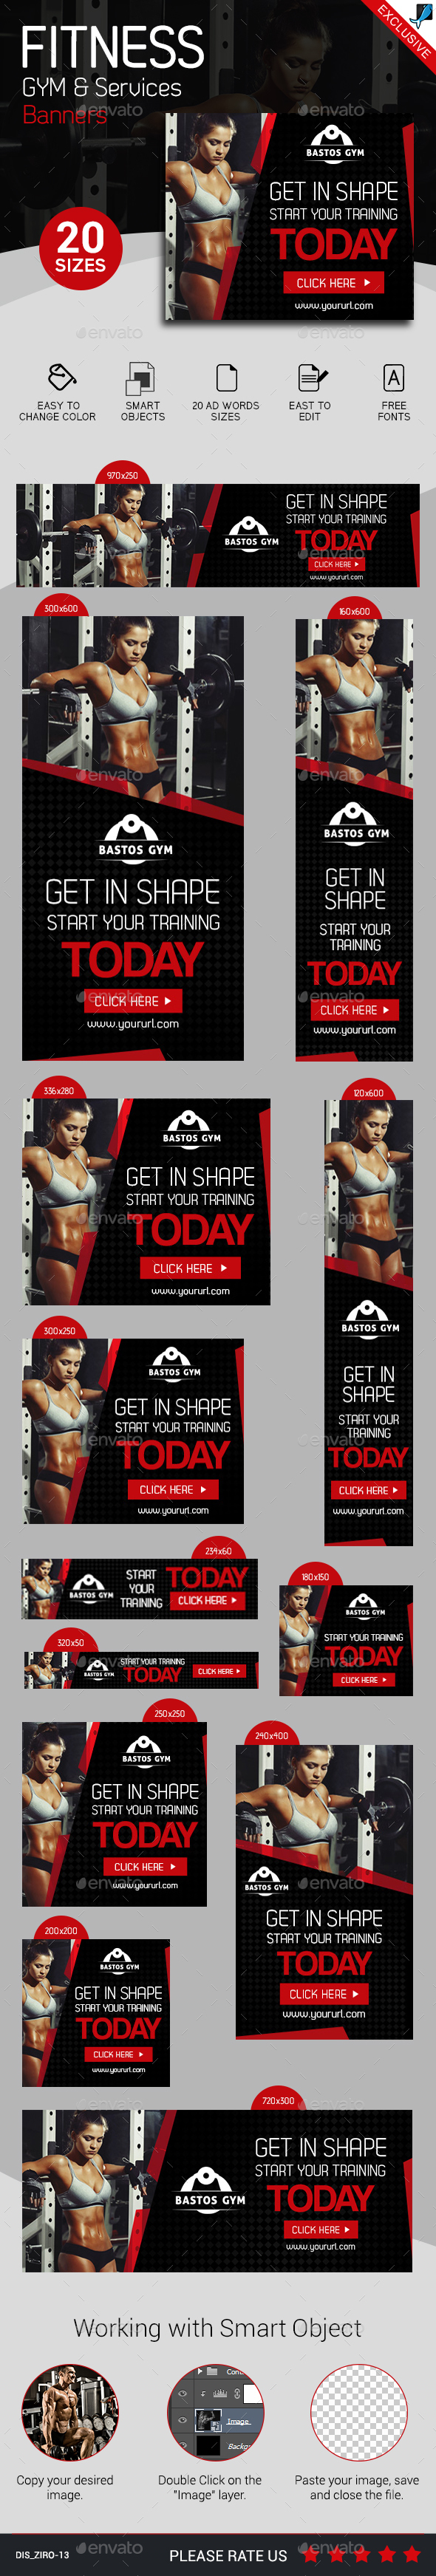 Fitness Gym and Services Ad Banners Set 2 - Banners & Ads Web Elements